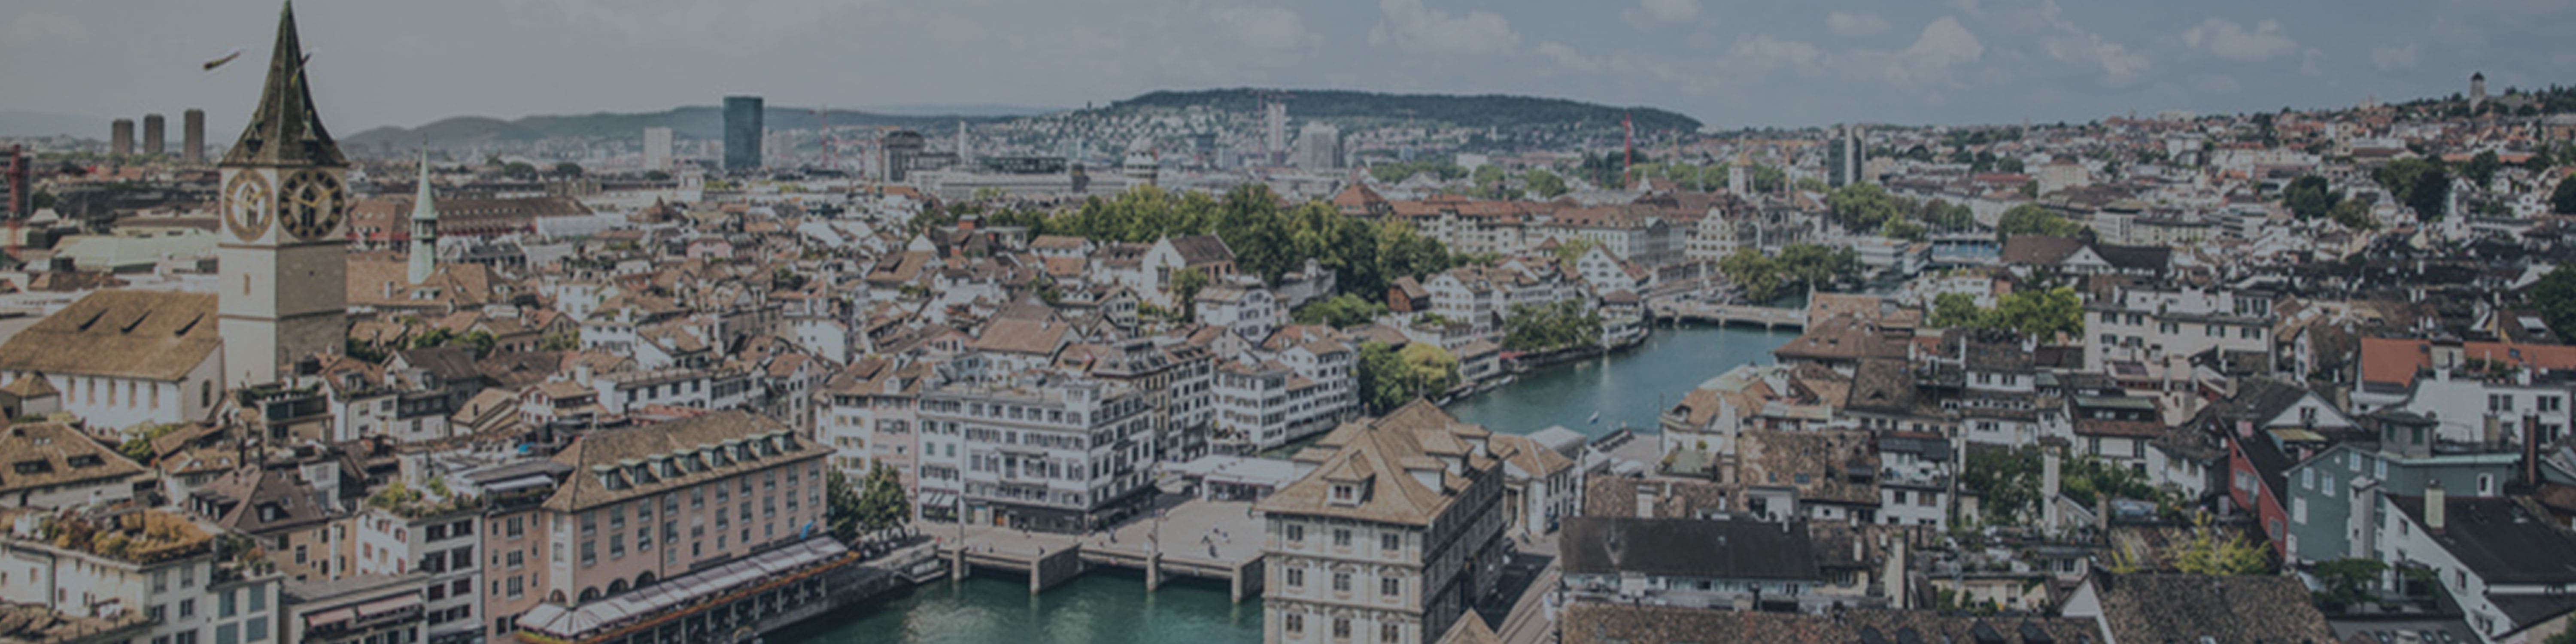 bespoke software development company in Switzerland